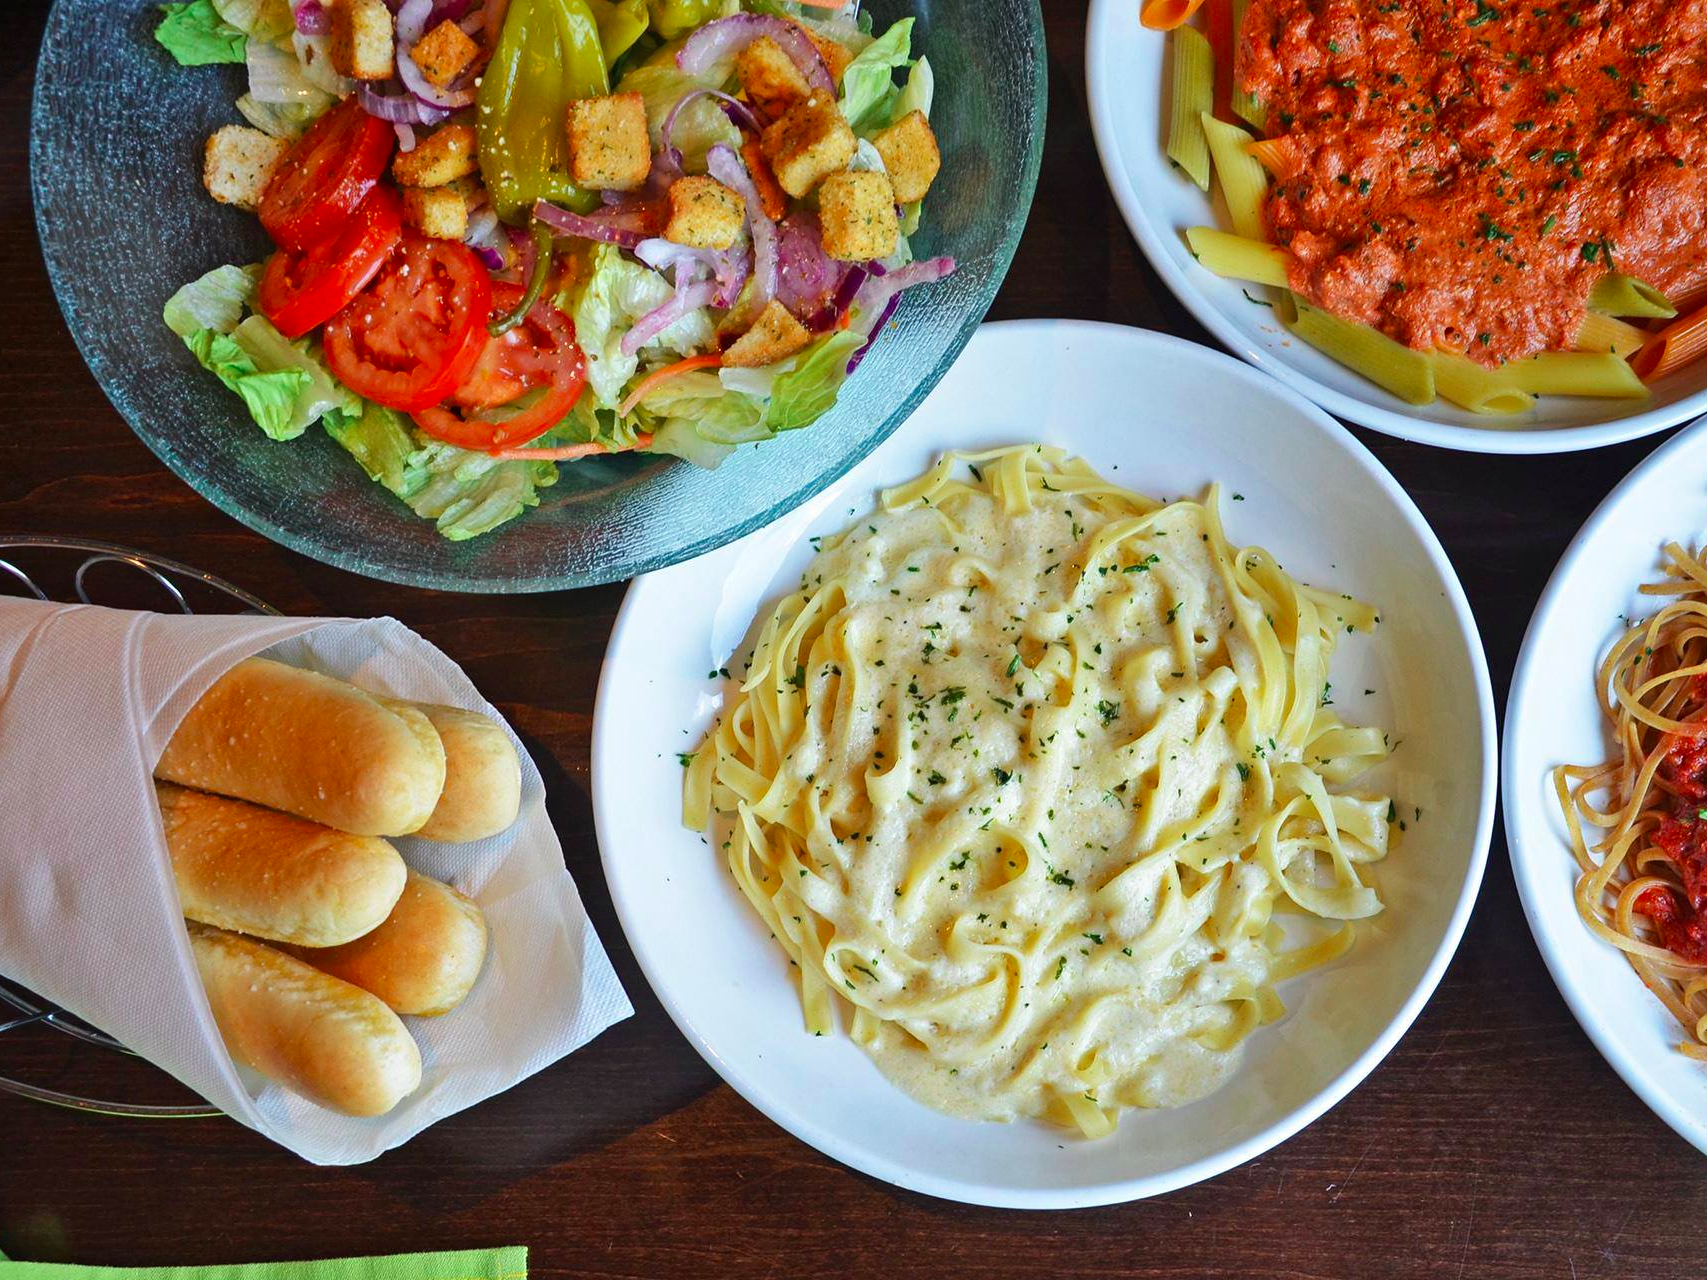 The 20 best chain restaurants in America (With images